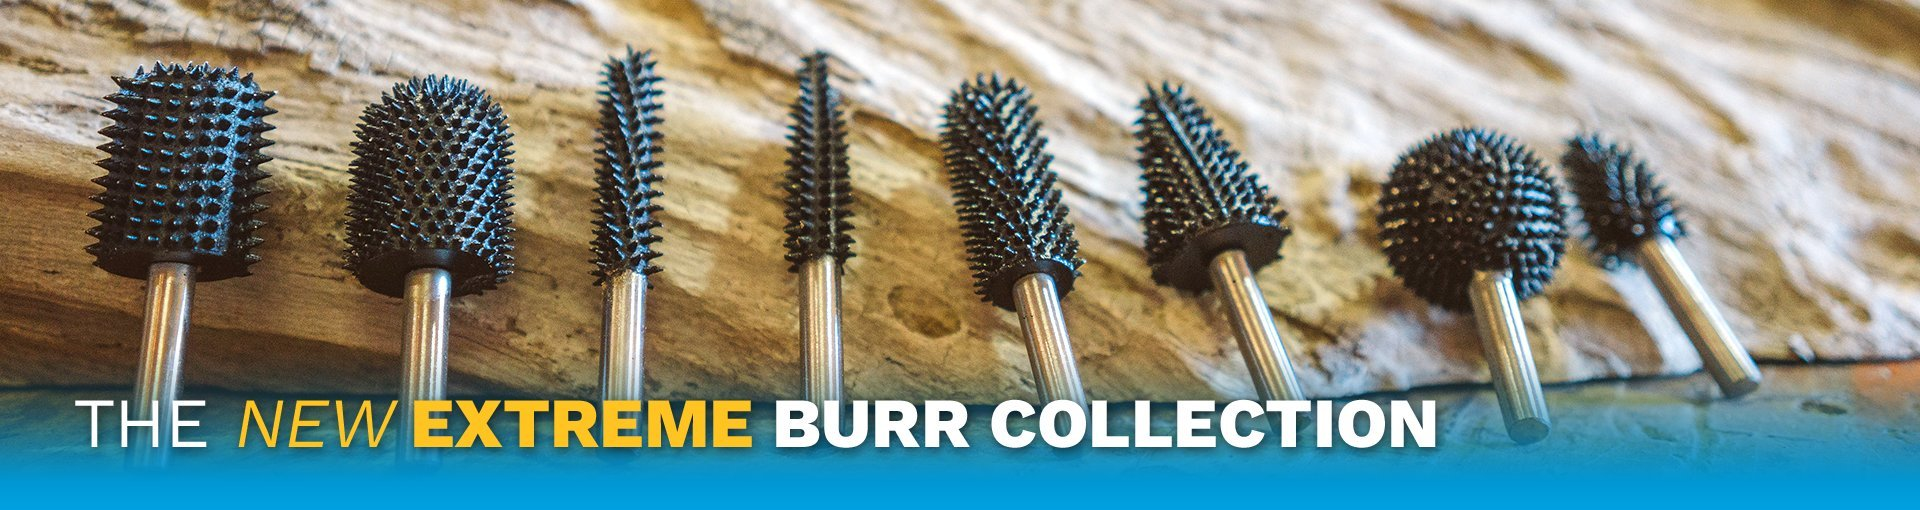 Shop the NEW Extreme Burr Collection Today!